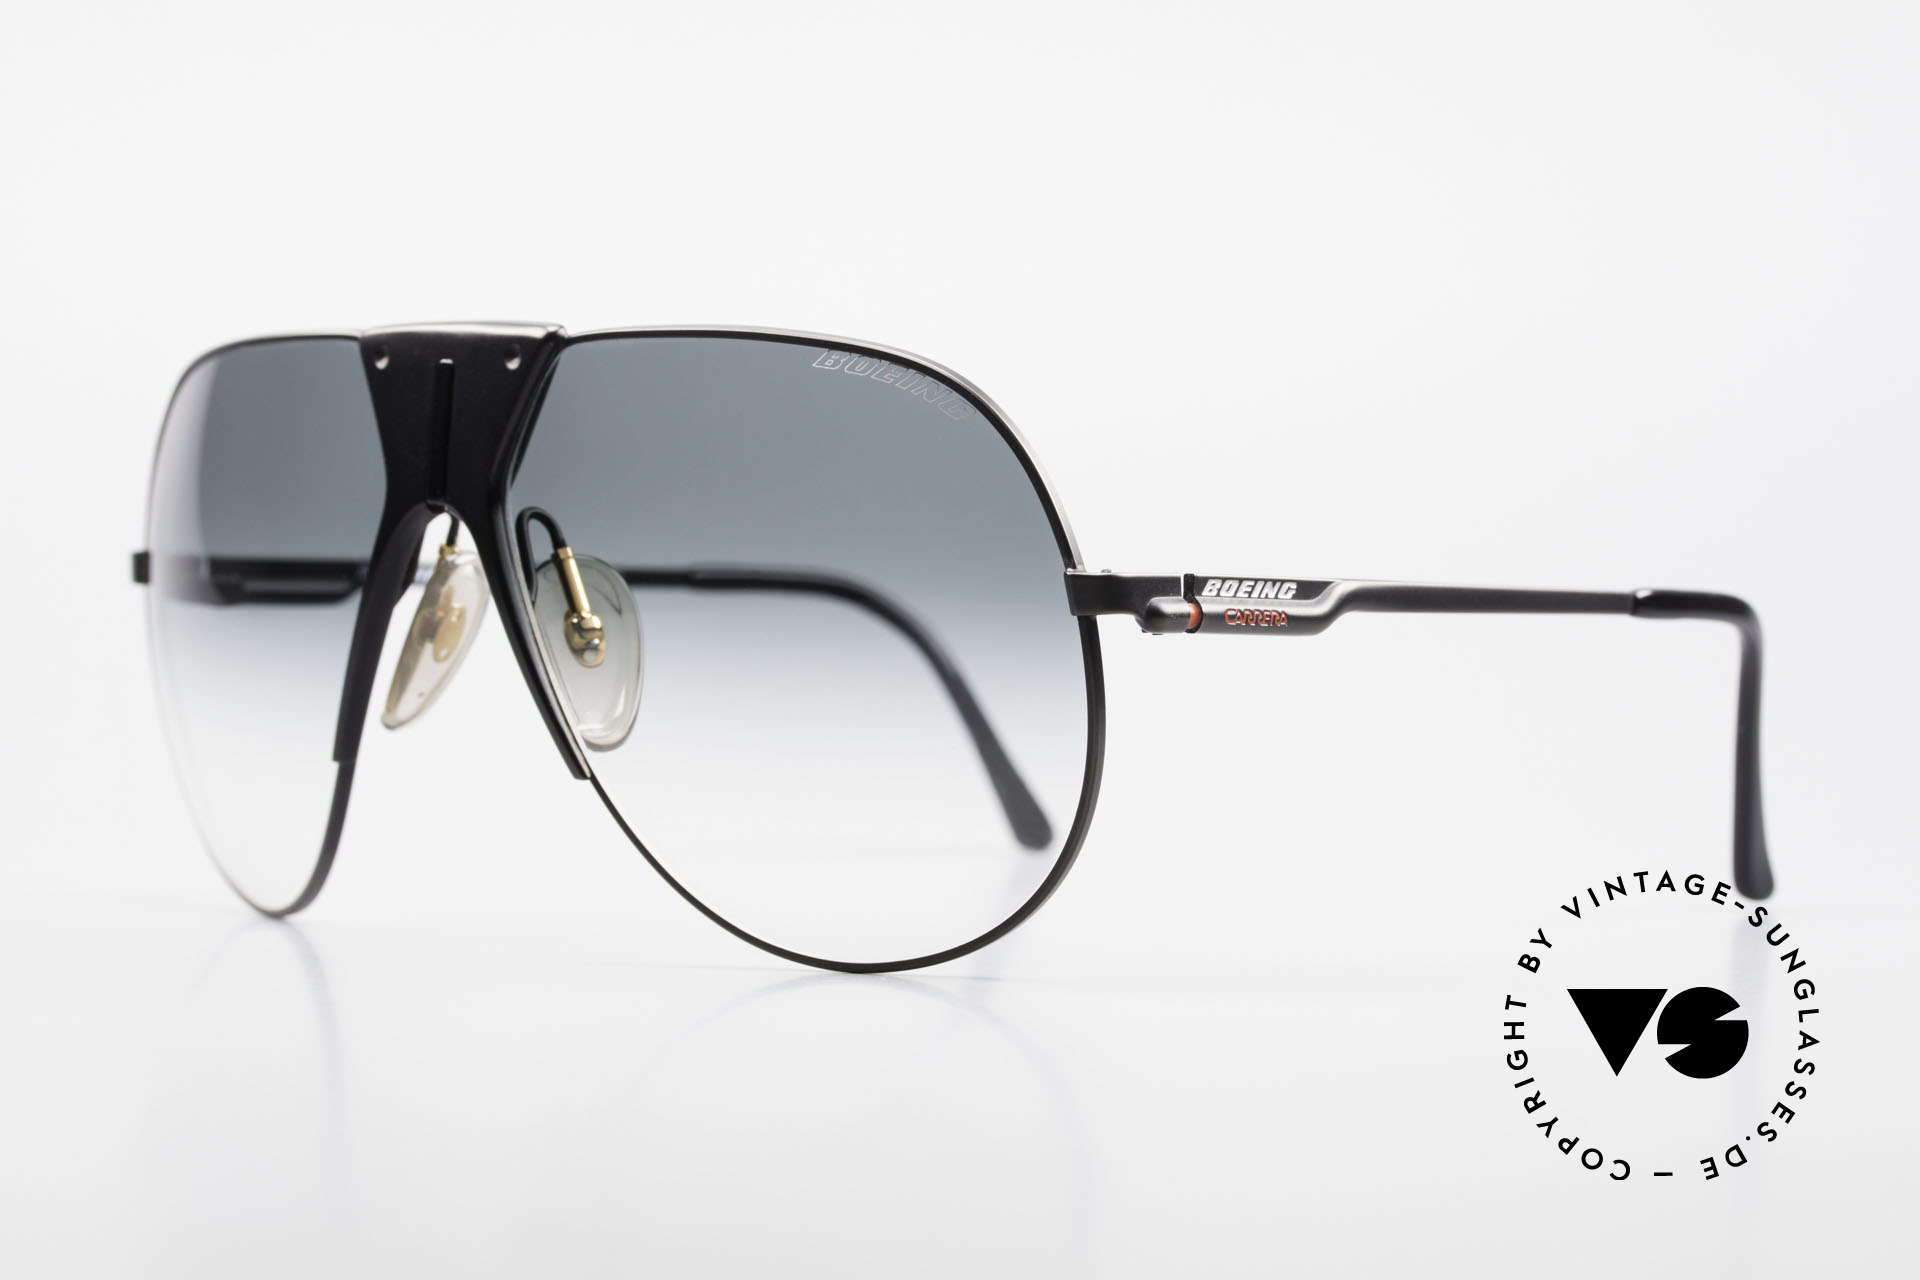 Boeing 5701 Rare XL 80's Pilots Shades, made by Carrera only for the BOEING pilots needs, Made for Men